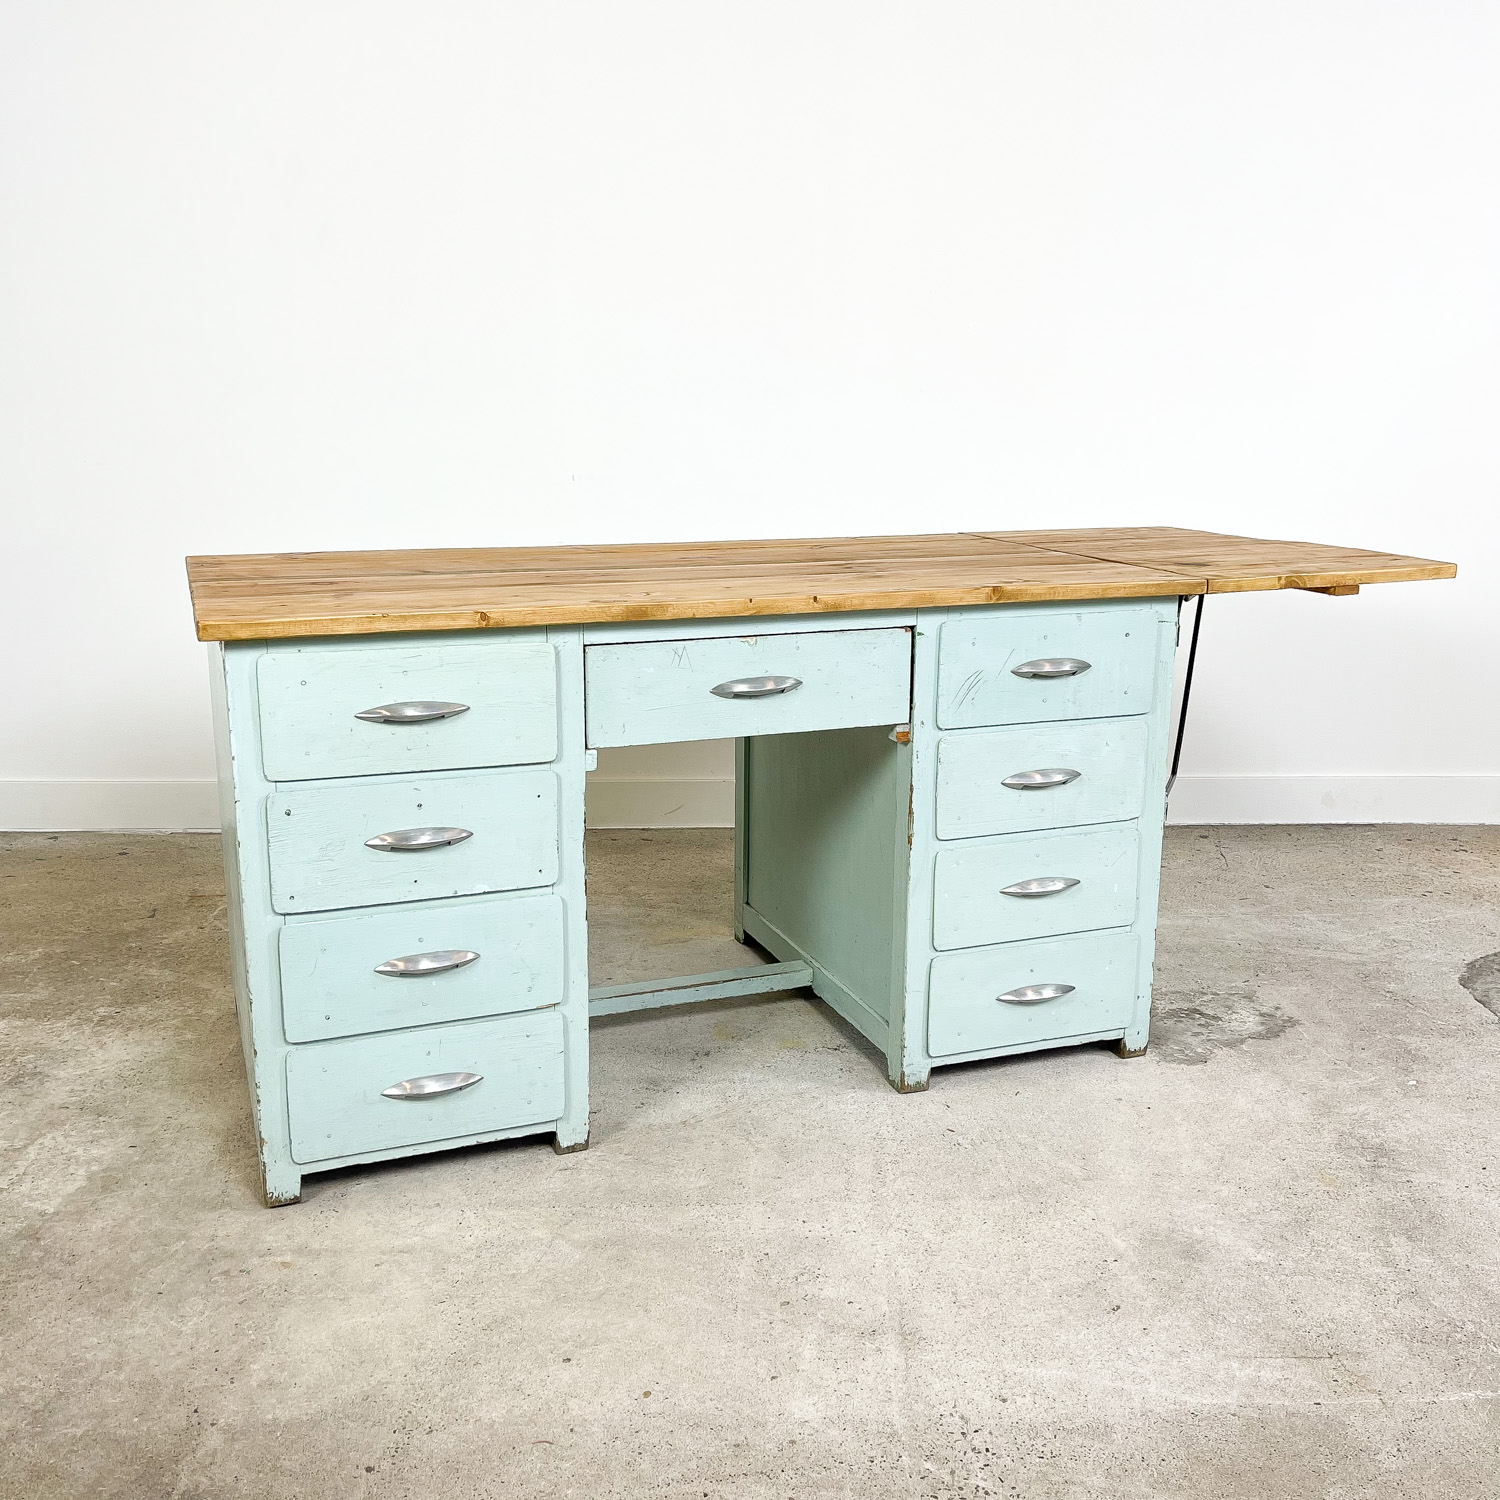 Vintage industrial painted wooden desk with extendable top light blue A